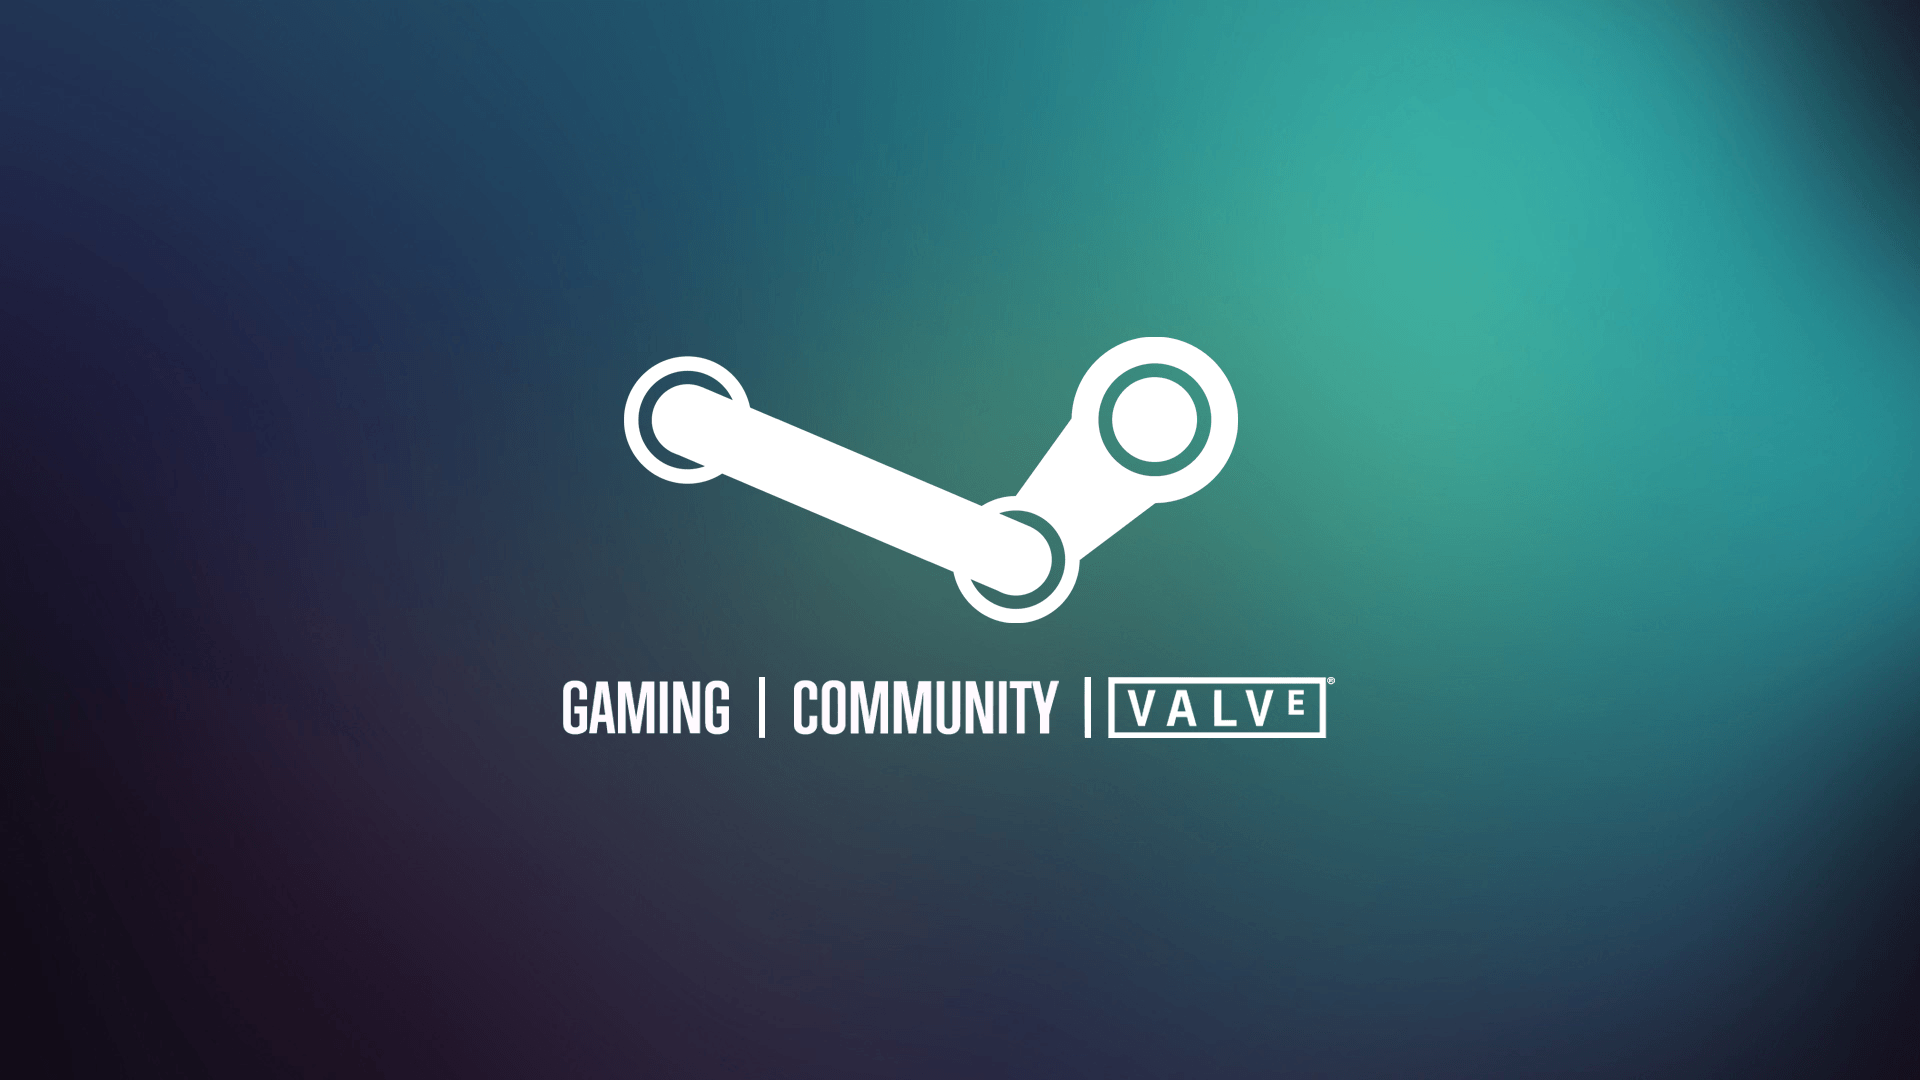 Wallpaper For Pc Gaming Hd